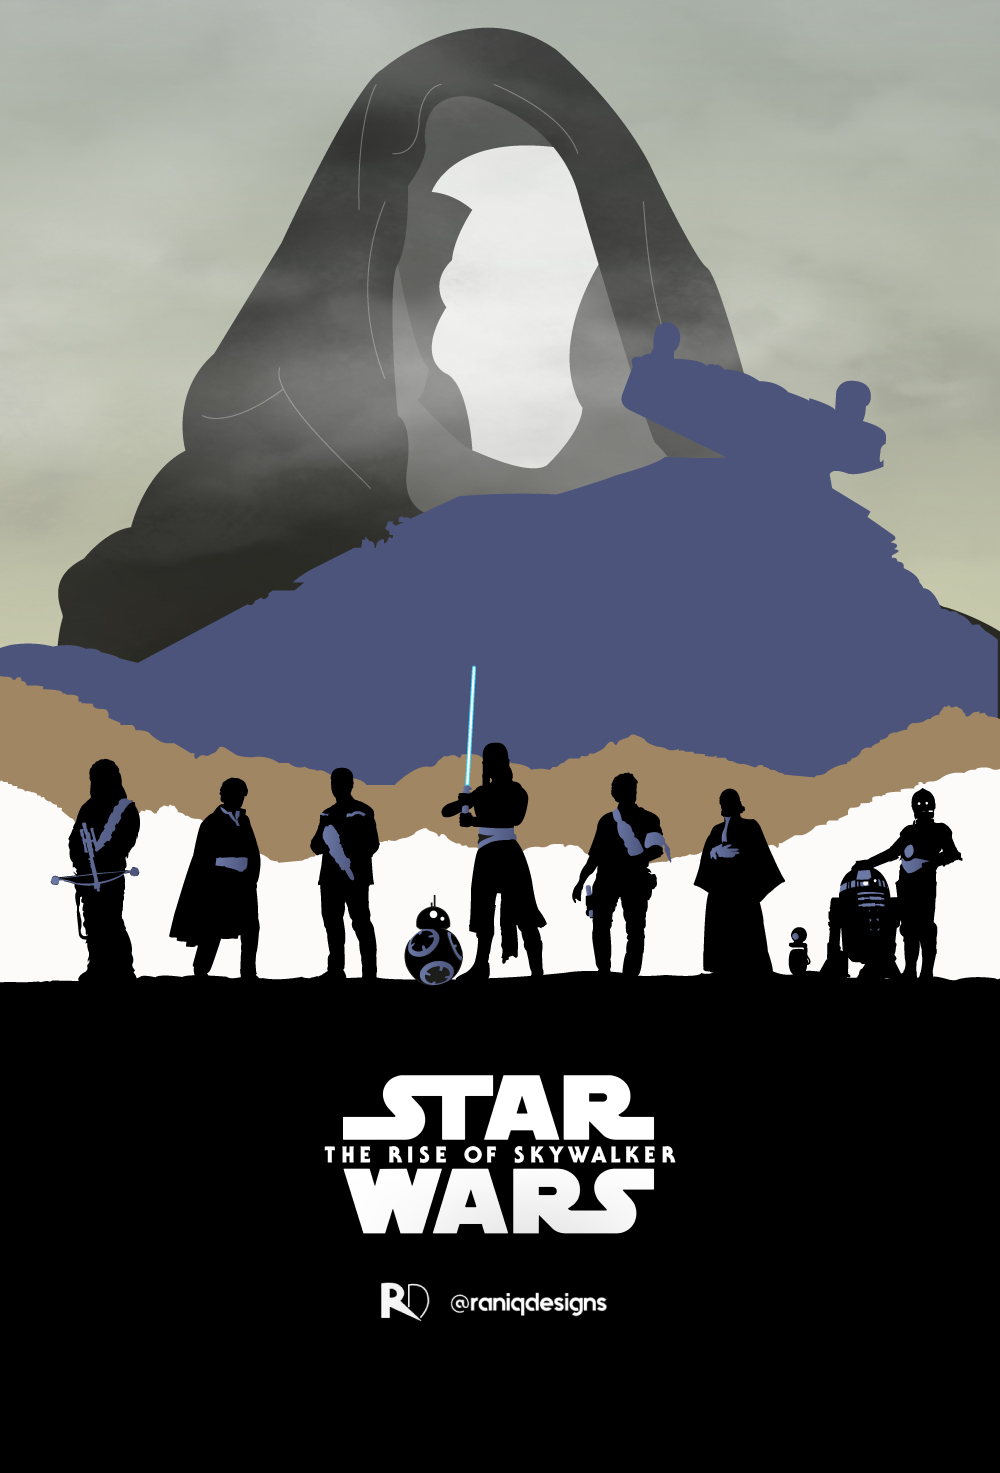 star wars the rise of skywalker art by Aniq